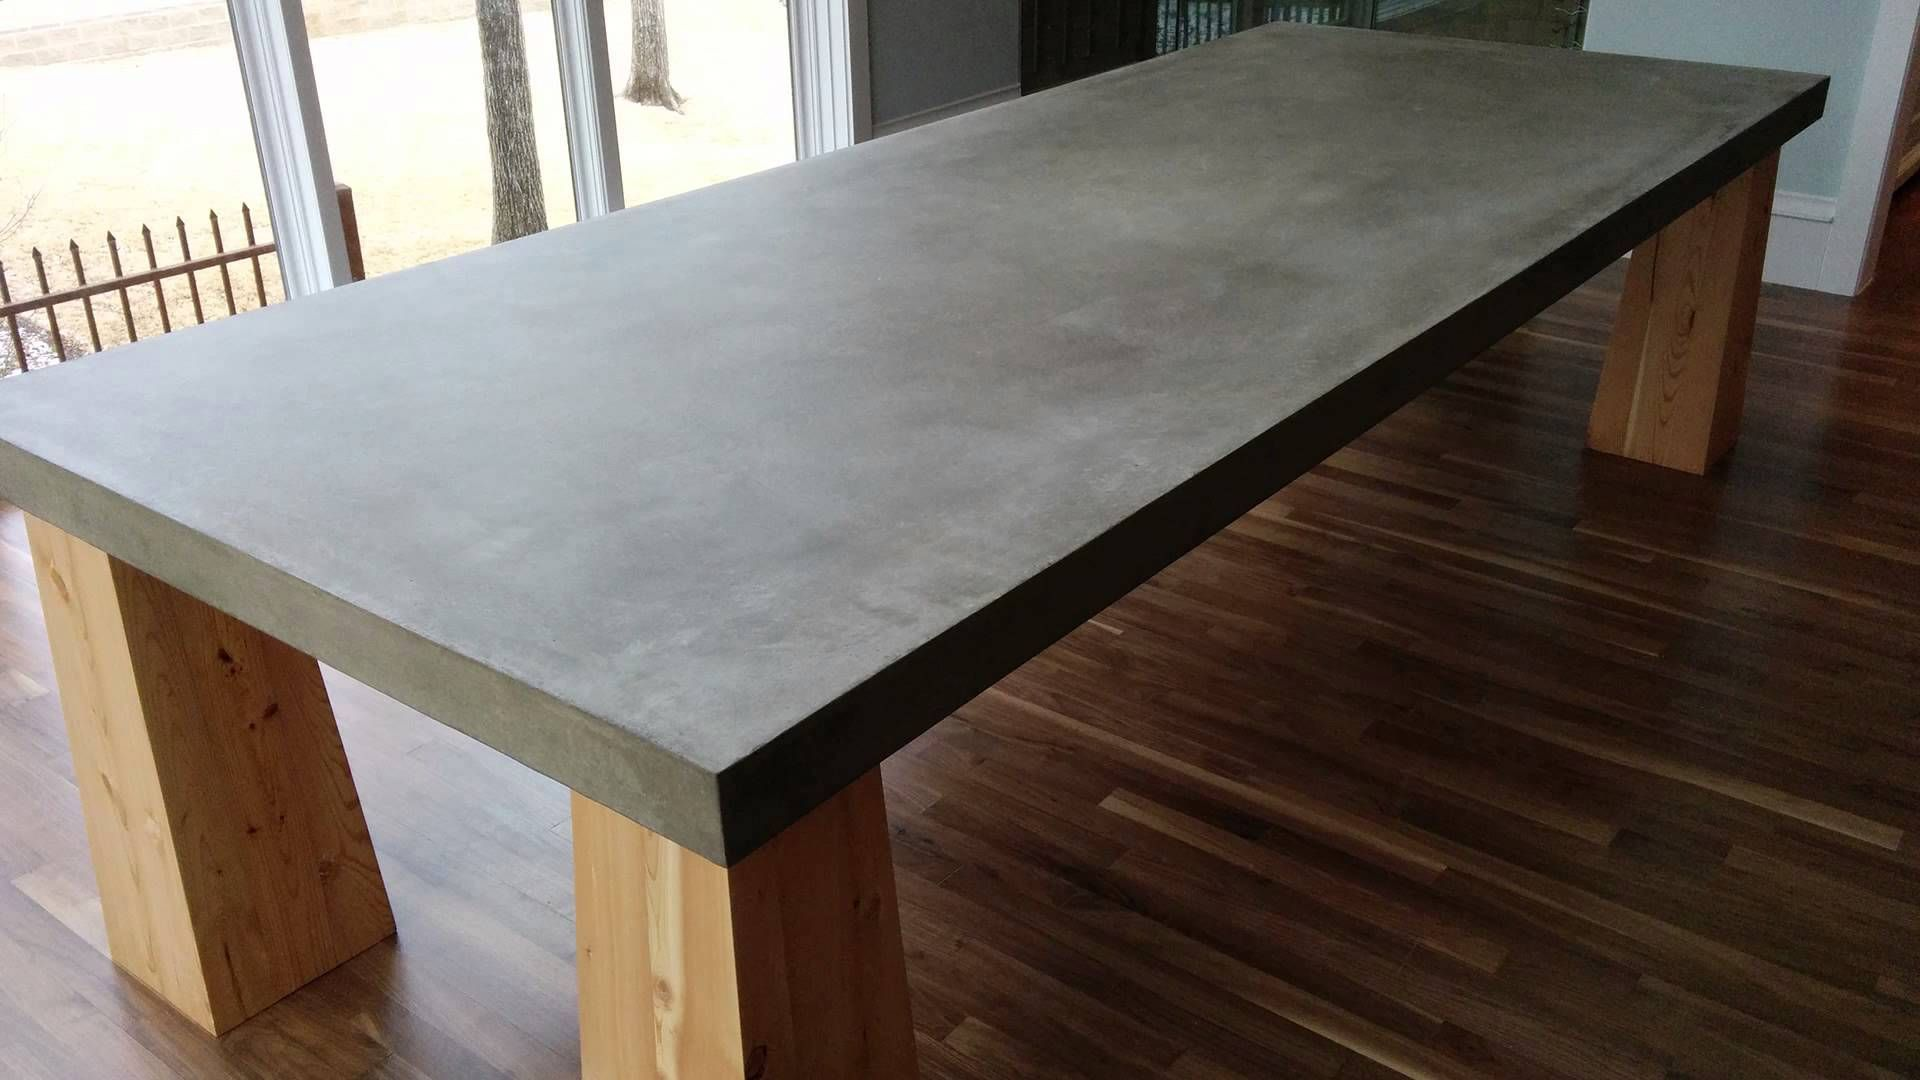 Concrete Table Top We 39ve Been Noticing An Increased Demand For Cement Table